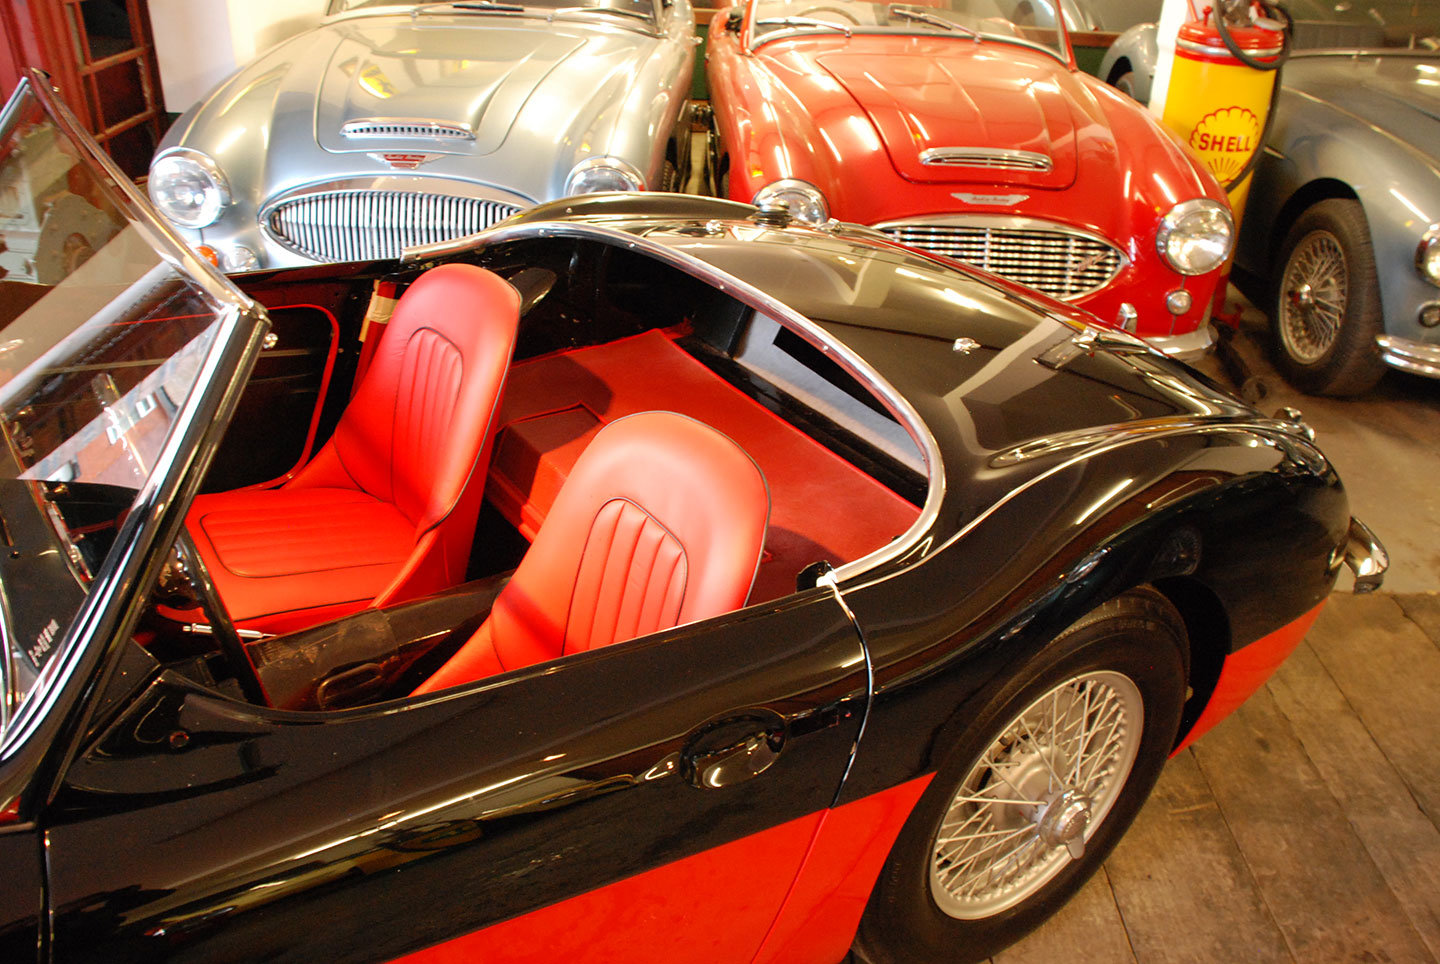 1961 Austin Healey 3000 Mk 2 BN7 2 seater tri carb For Sale (picture 6 of 10)